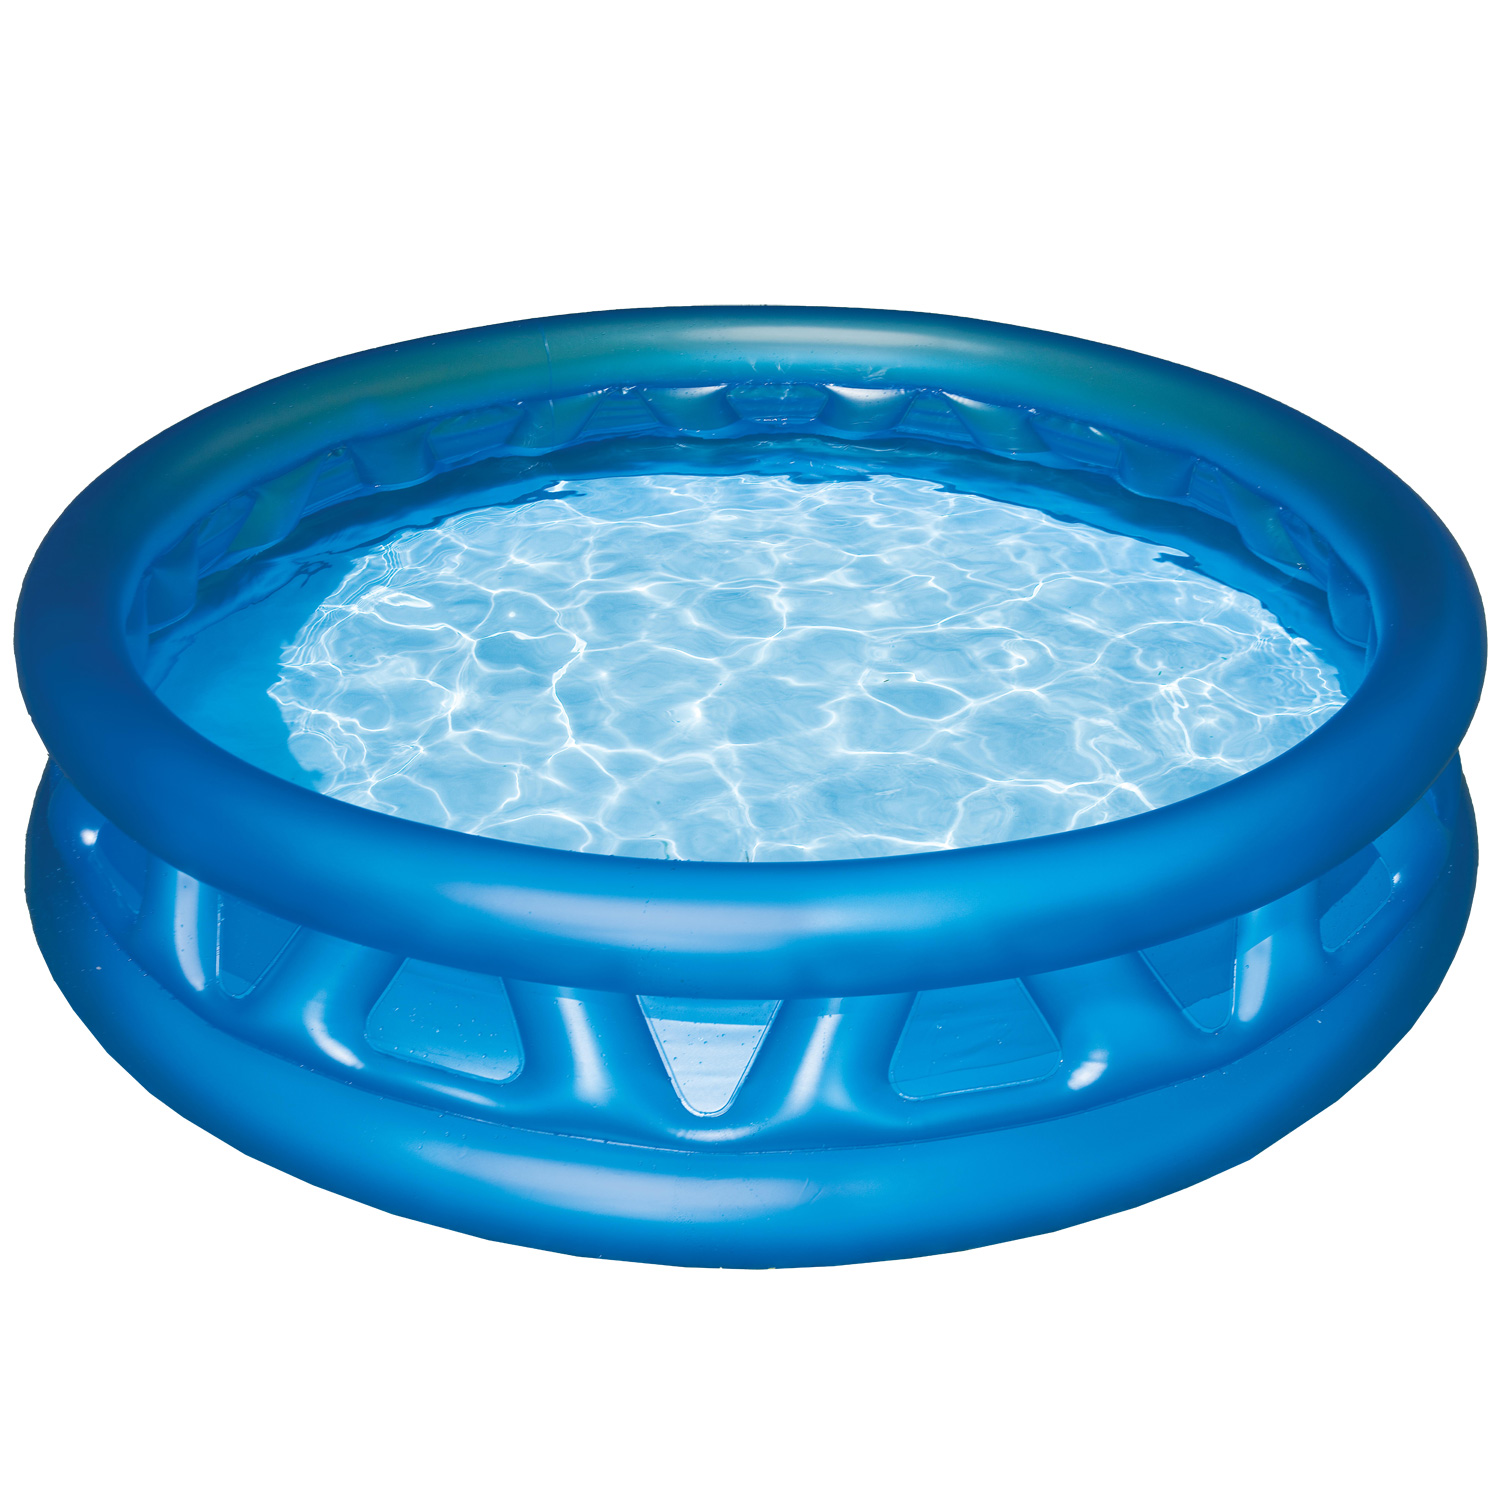 Piscine gonflable intex soft side pool raviday piscine for Piscine gonflable rectangulaire